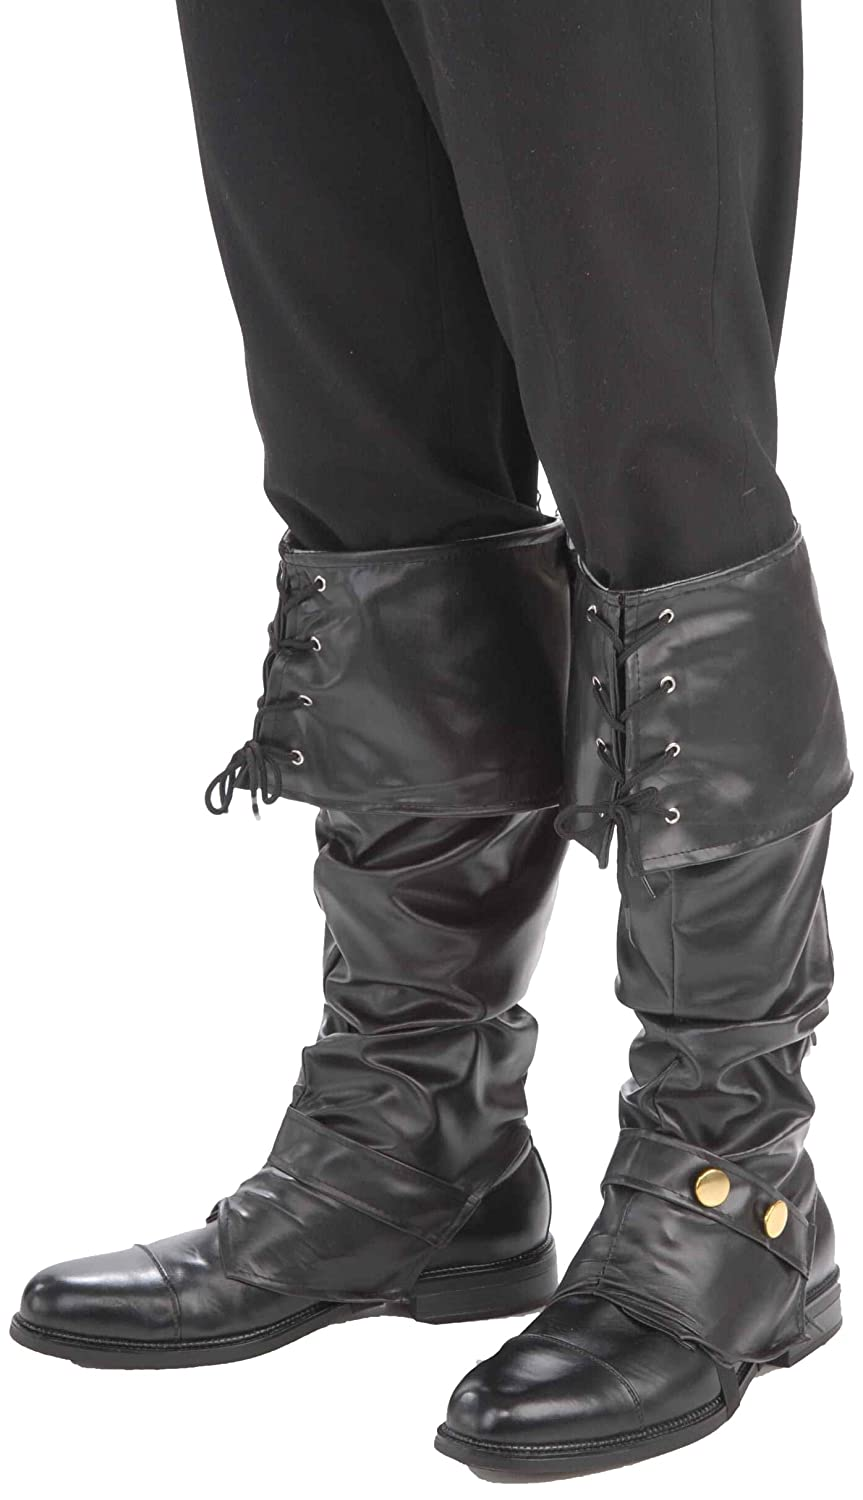 sc 1 st  Amazon.com & Amazon.com: Boot Cover Pirate Costume Accessory: Clothing